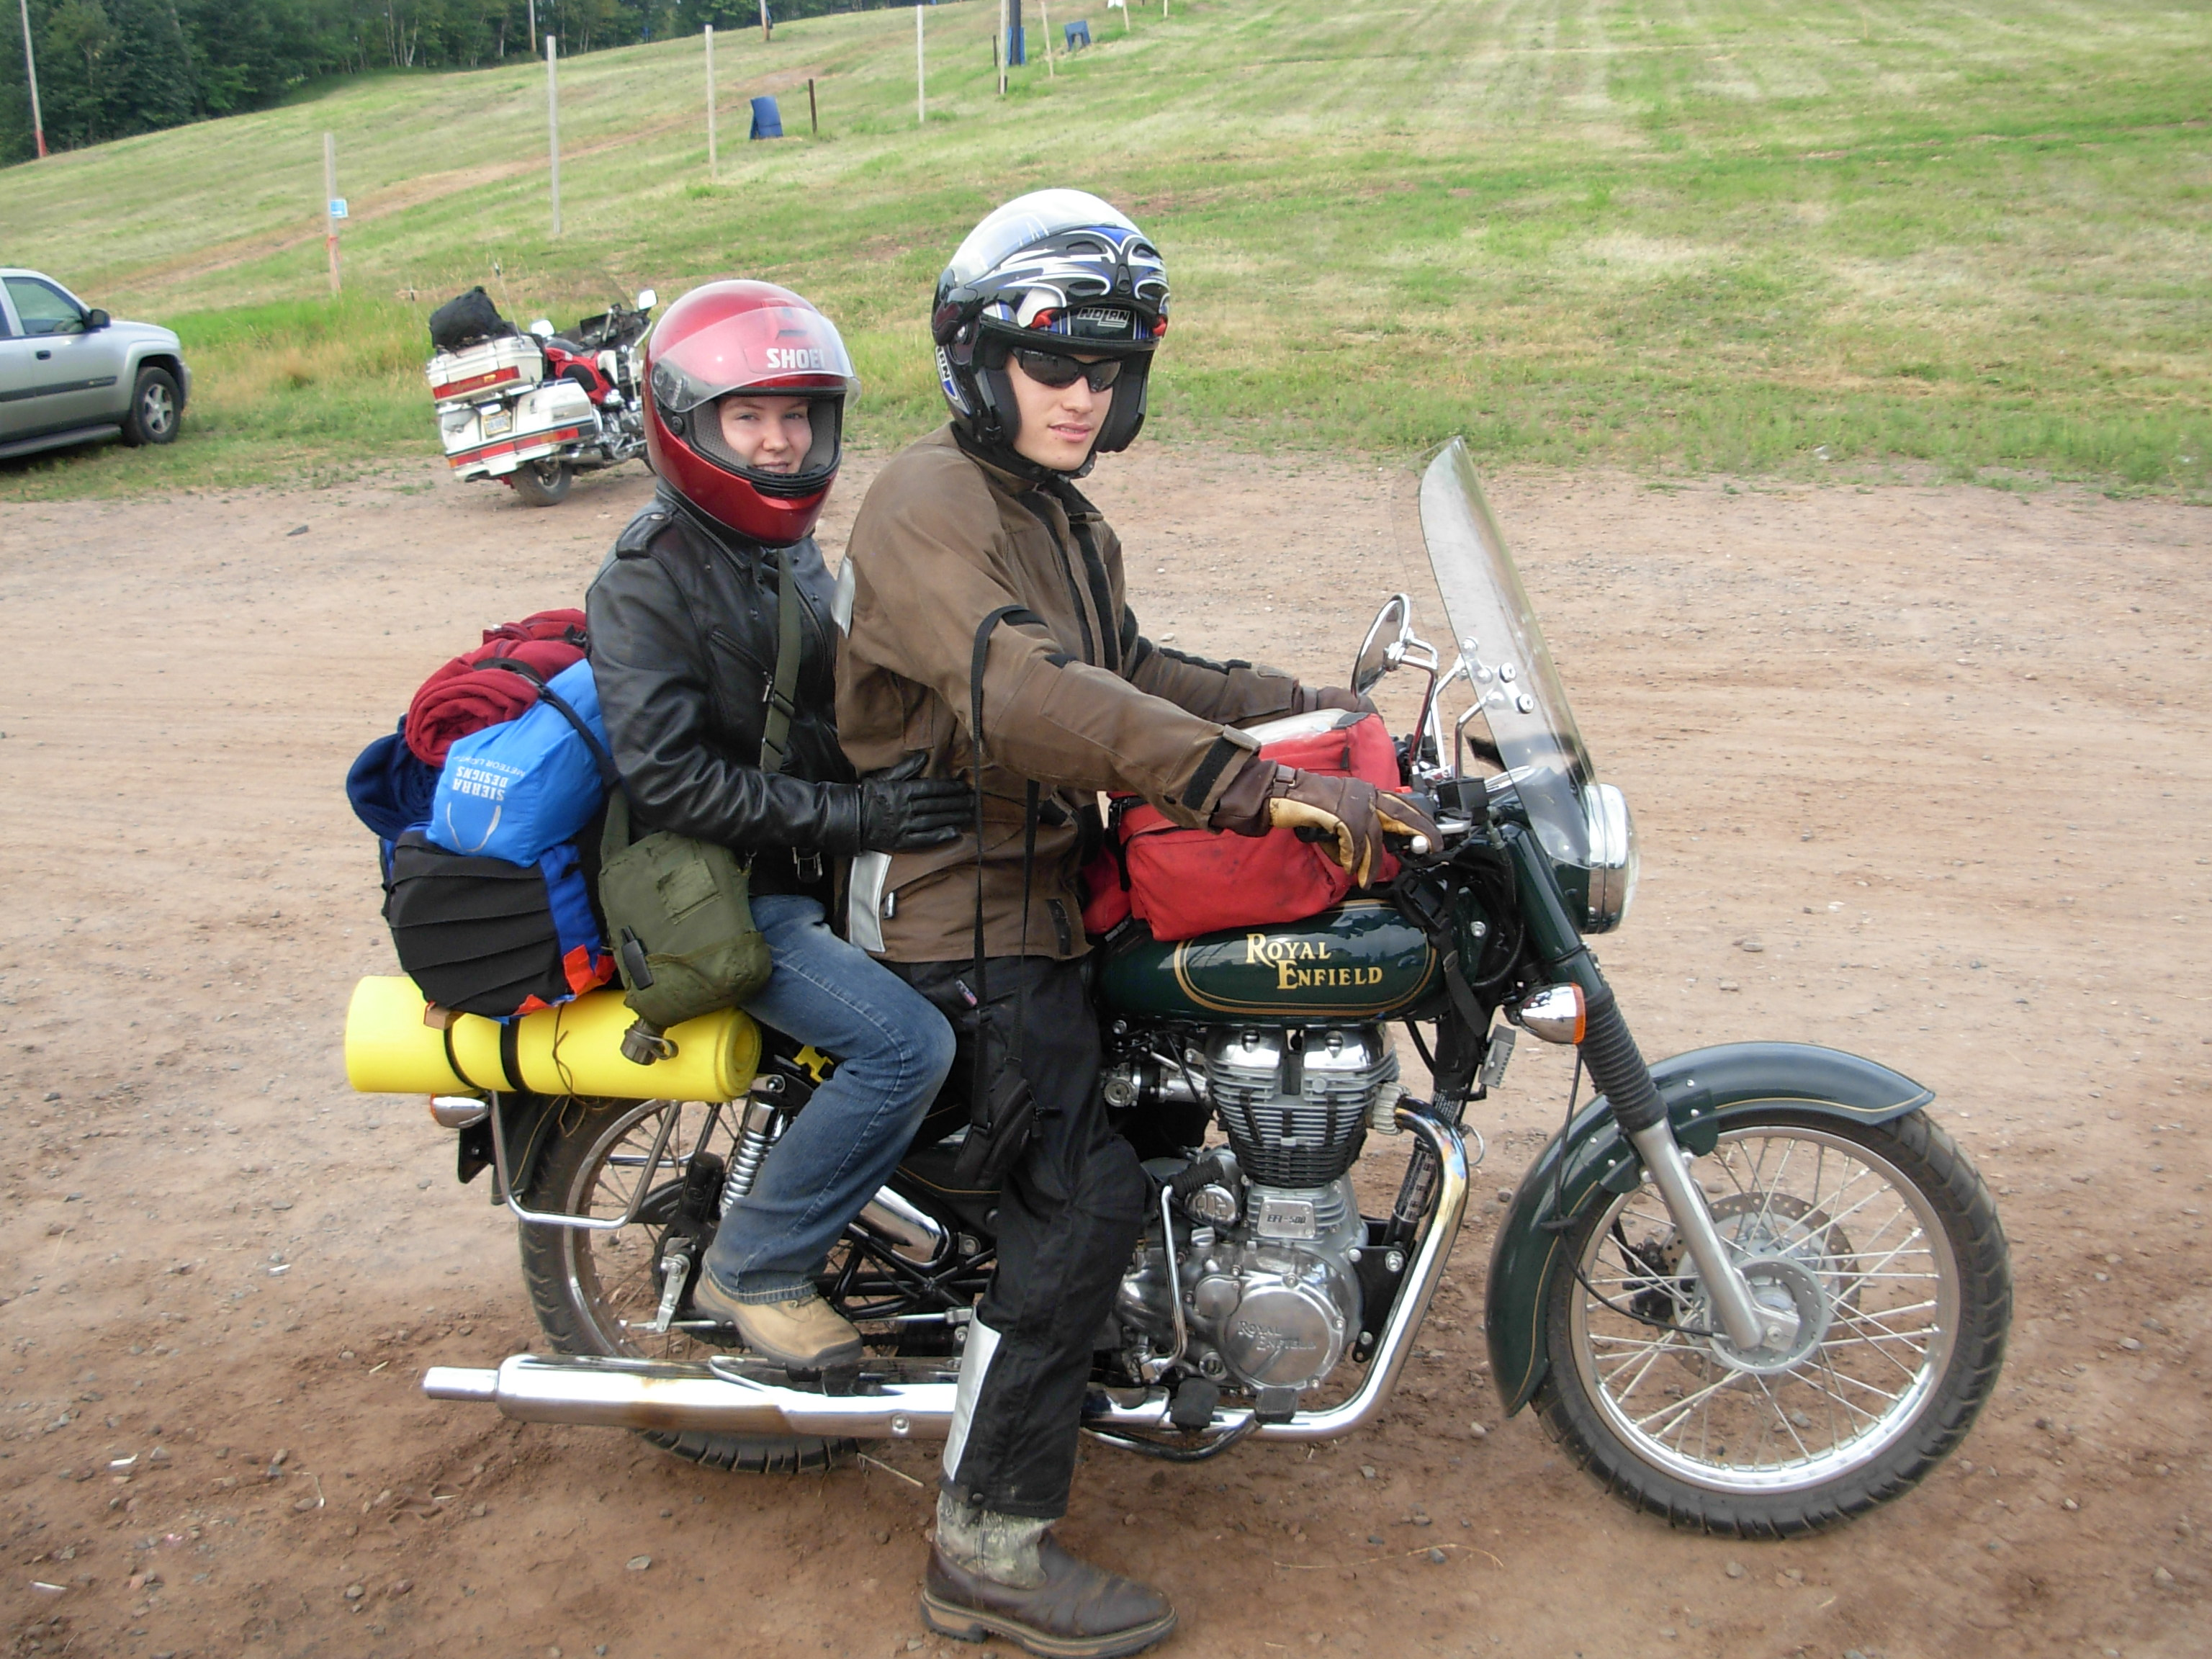 Full gear is an important part of any motorcycle ride - no matter how short